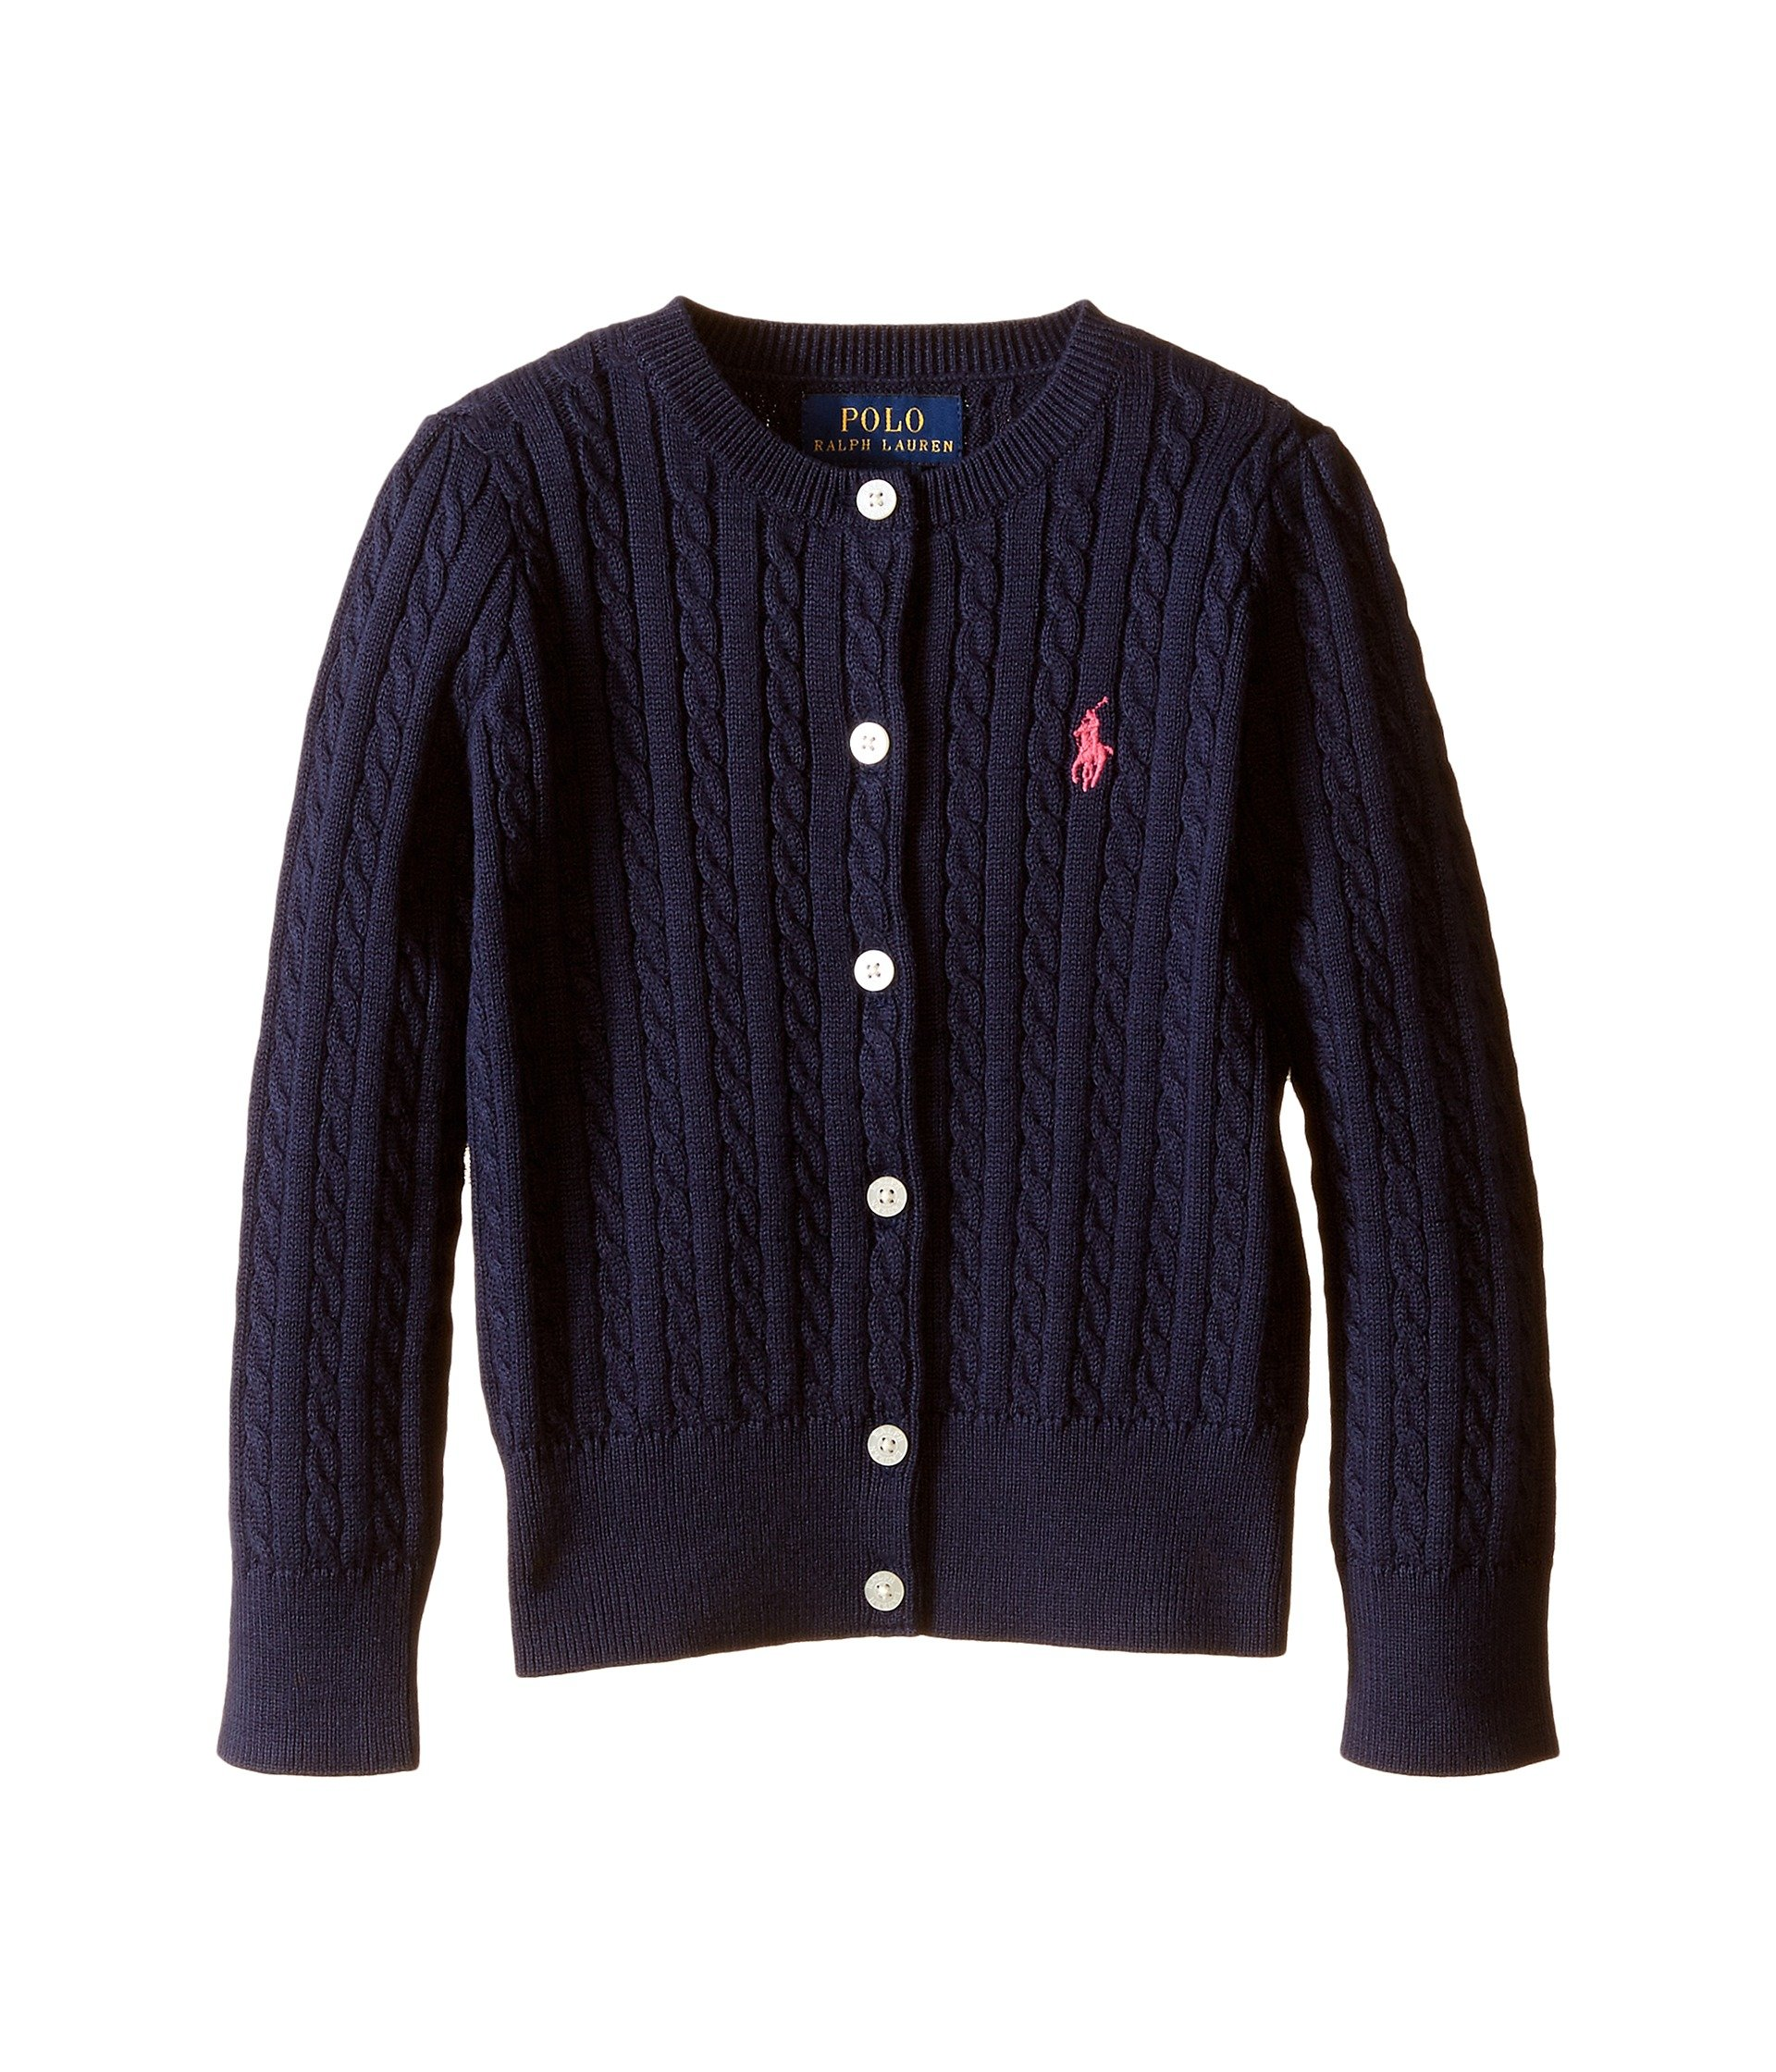 Polo Ralph Lauren Little Girl's Mini Cable Cardigan, 3T, French Navy